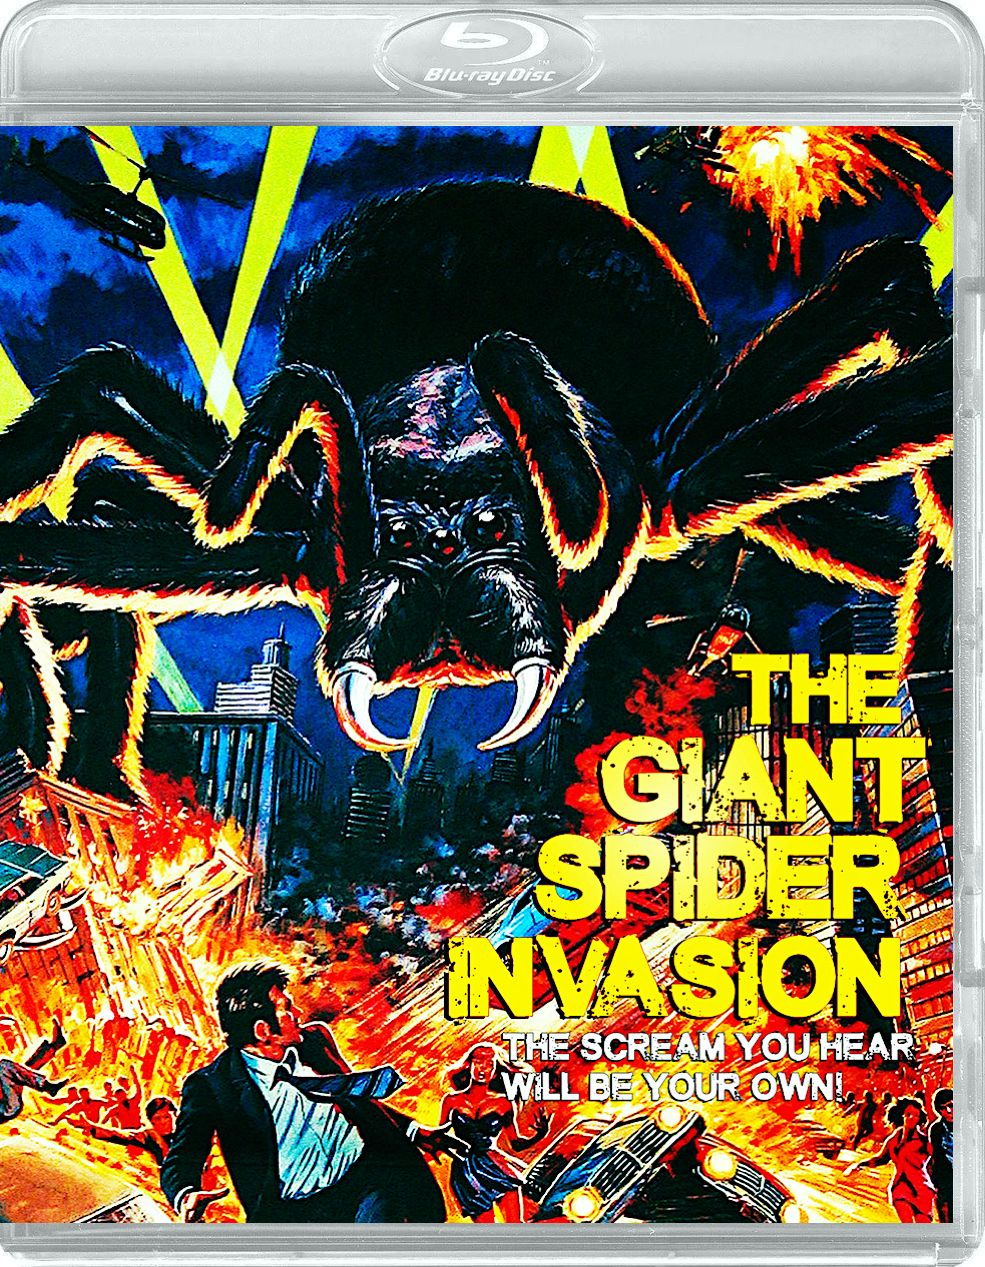 The Giant Spider Invasion Reverse Cover Blu Ray Dark Force Entertainment Giant Spider Comic Book Cover Book Cover